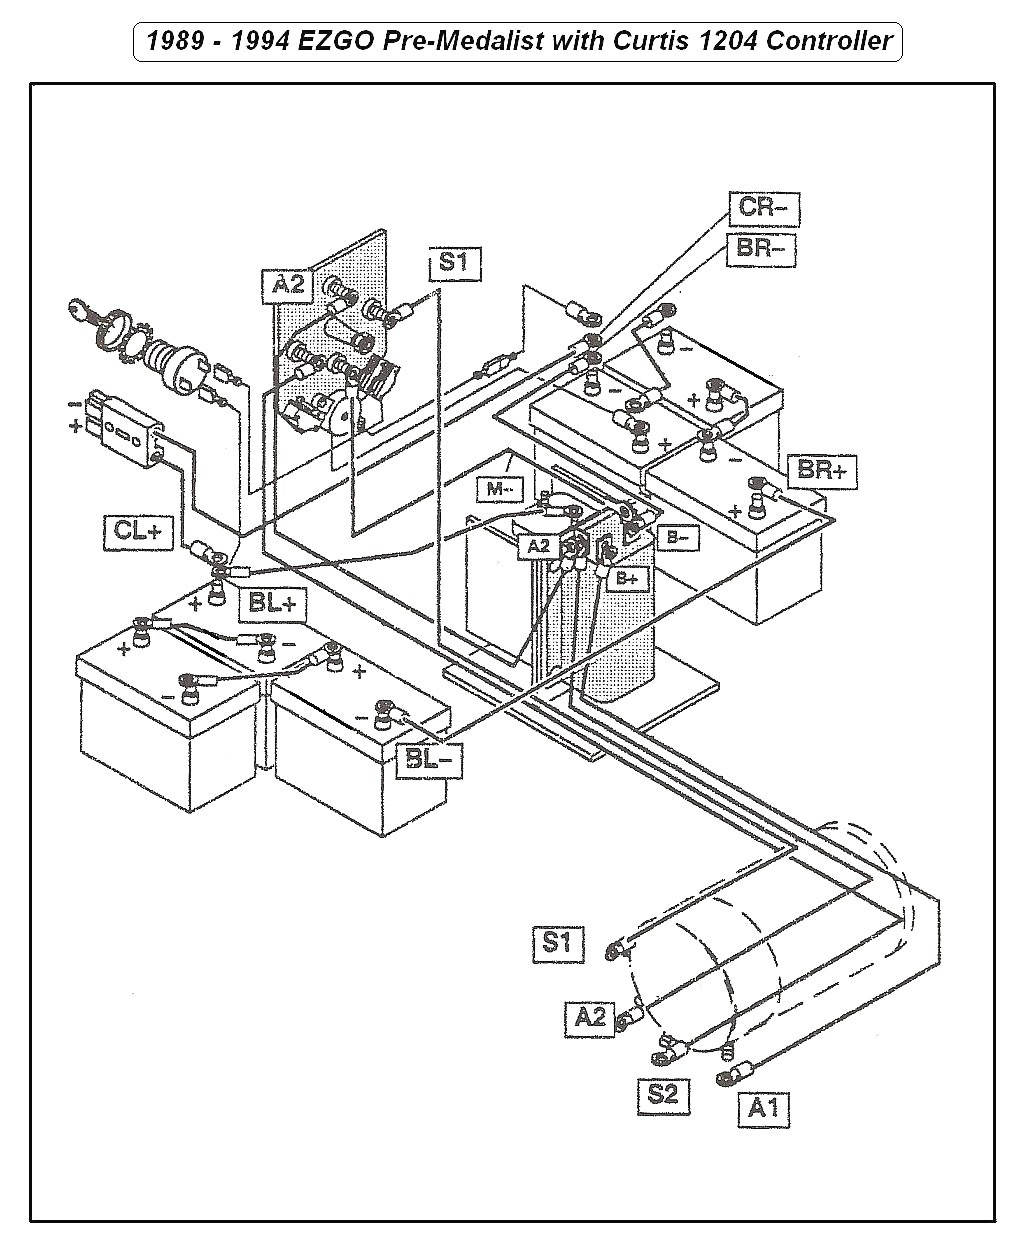 36 Volt Golf Cart Battery Wiring Diagram The Best Inside Club Car With Ingersoll Rand